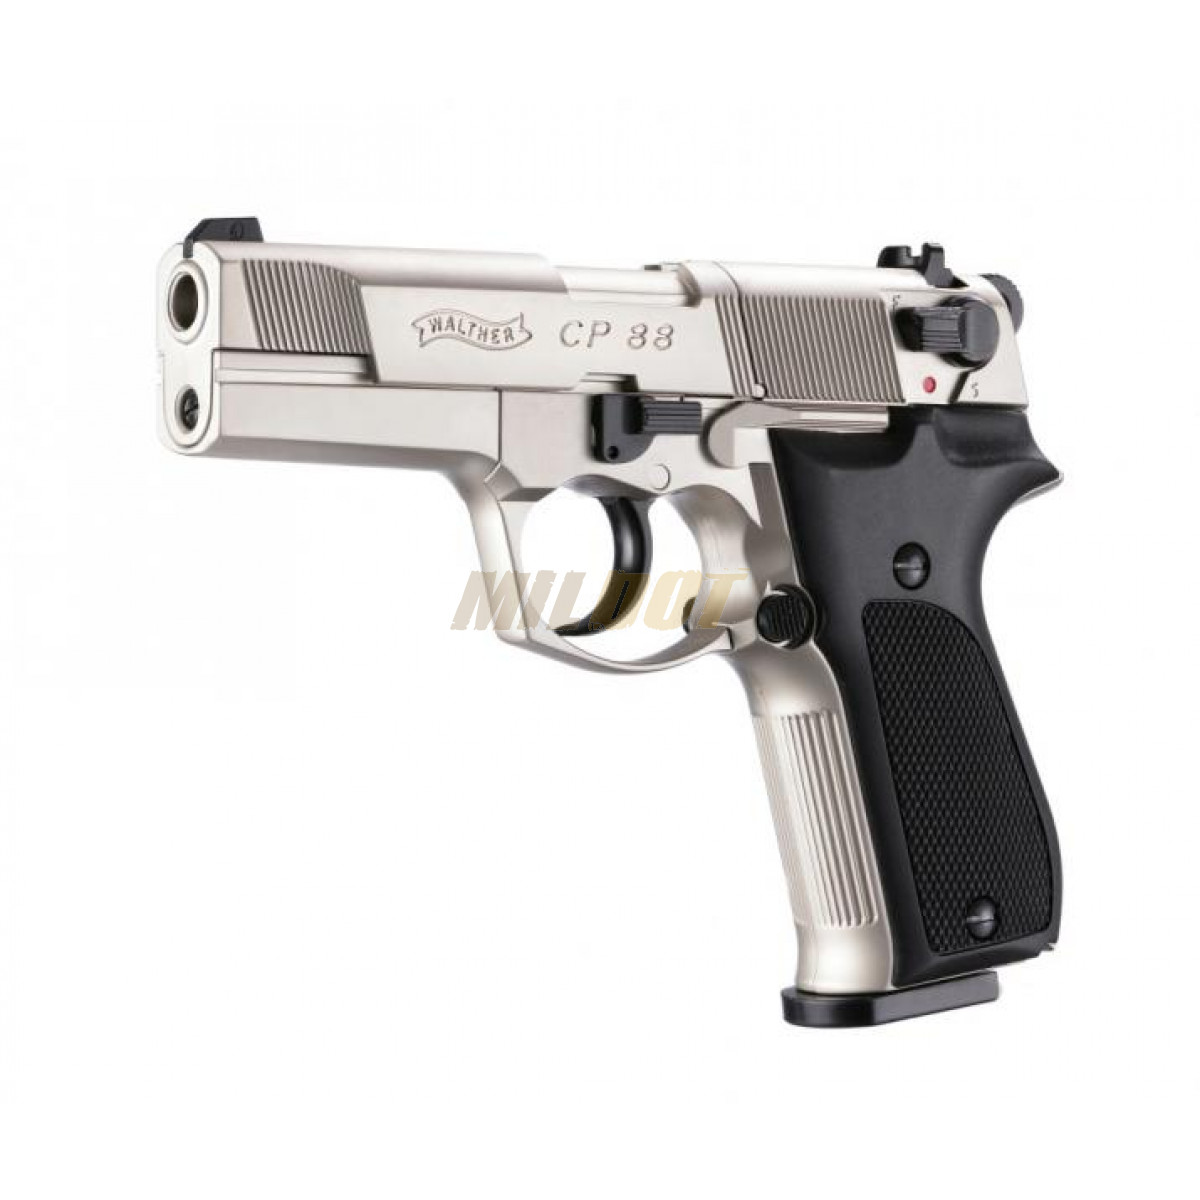 pistola walther cp88 nickel co2 4 5mm rh mildot es Walther CP88 Competition Walther CP88 Review